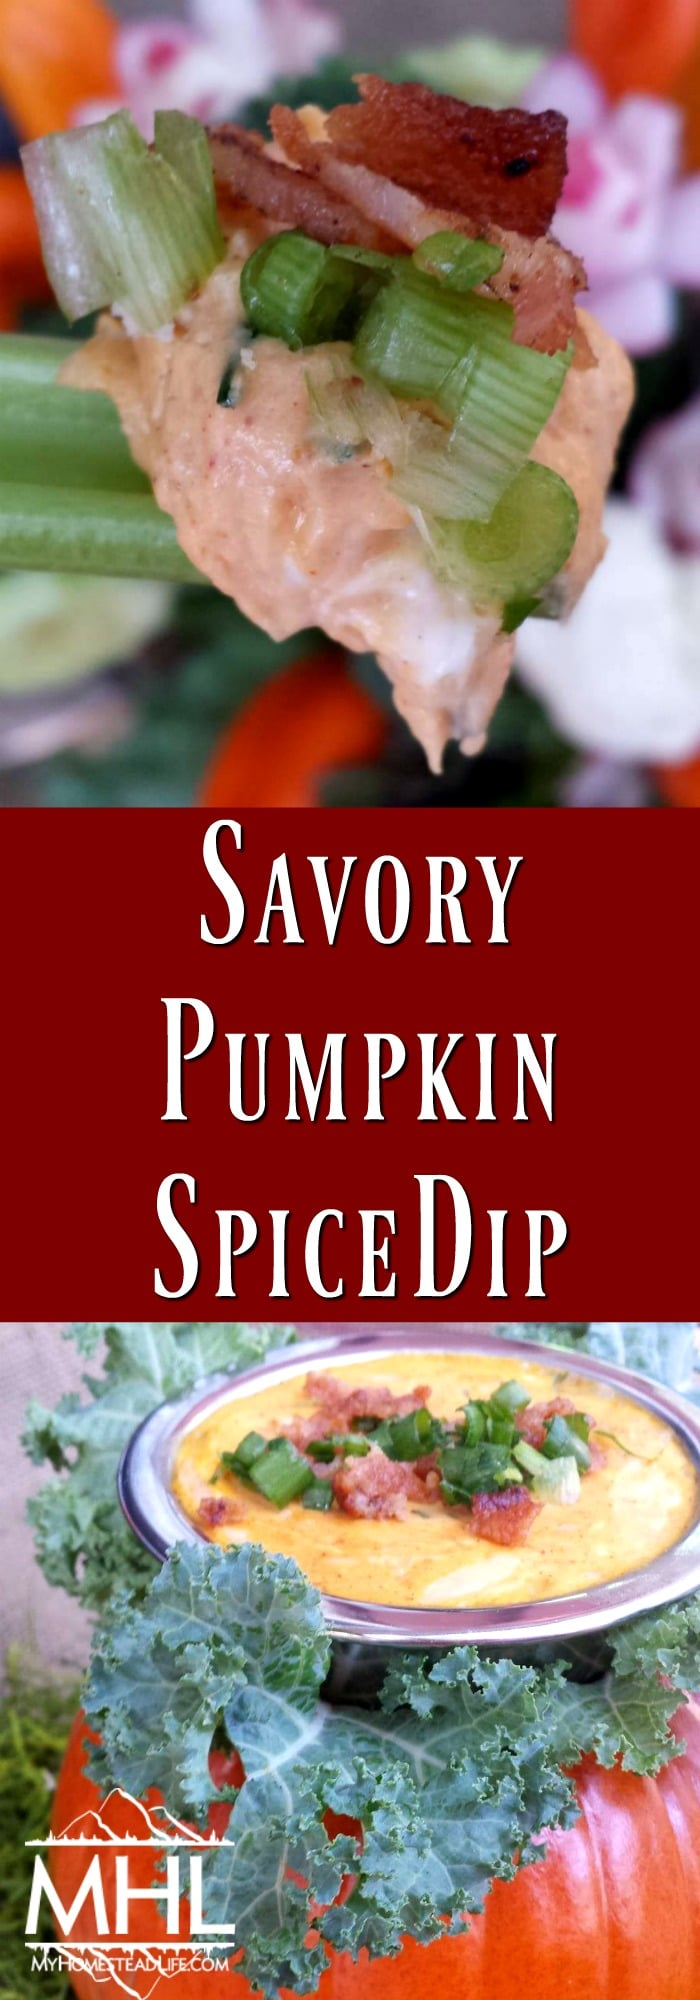 Savory Pumpkin Spice Dip with Fresh Herbs- perfect dip for the fall